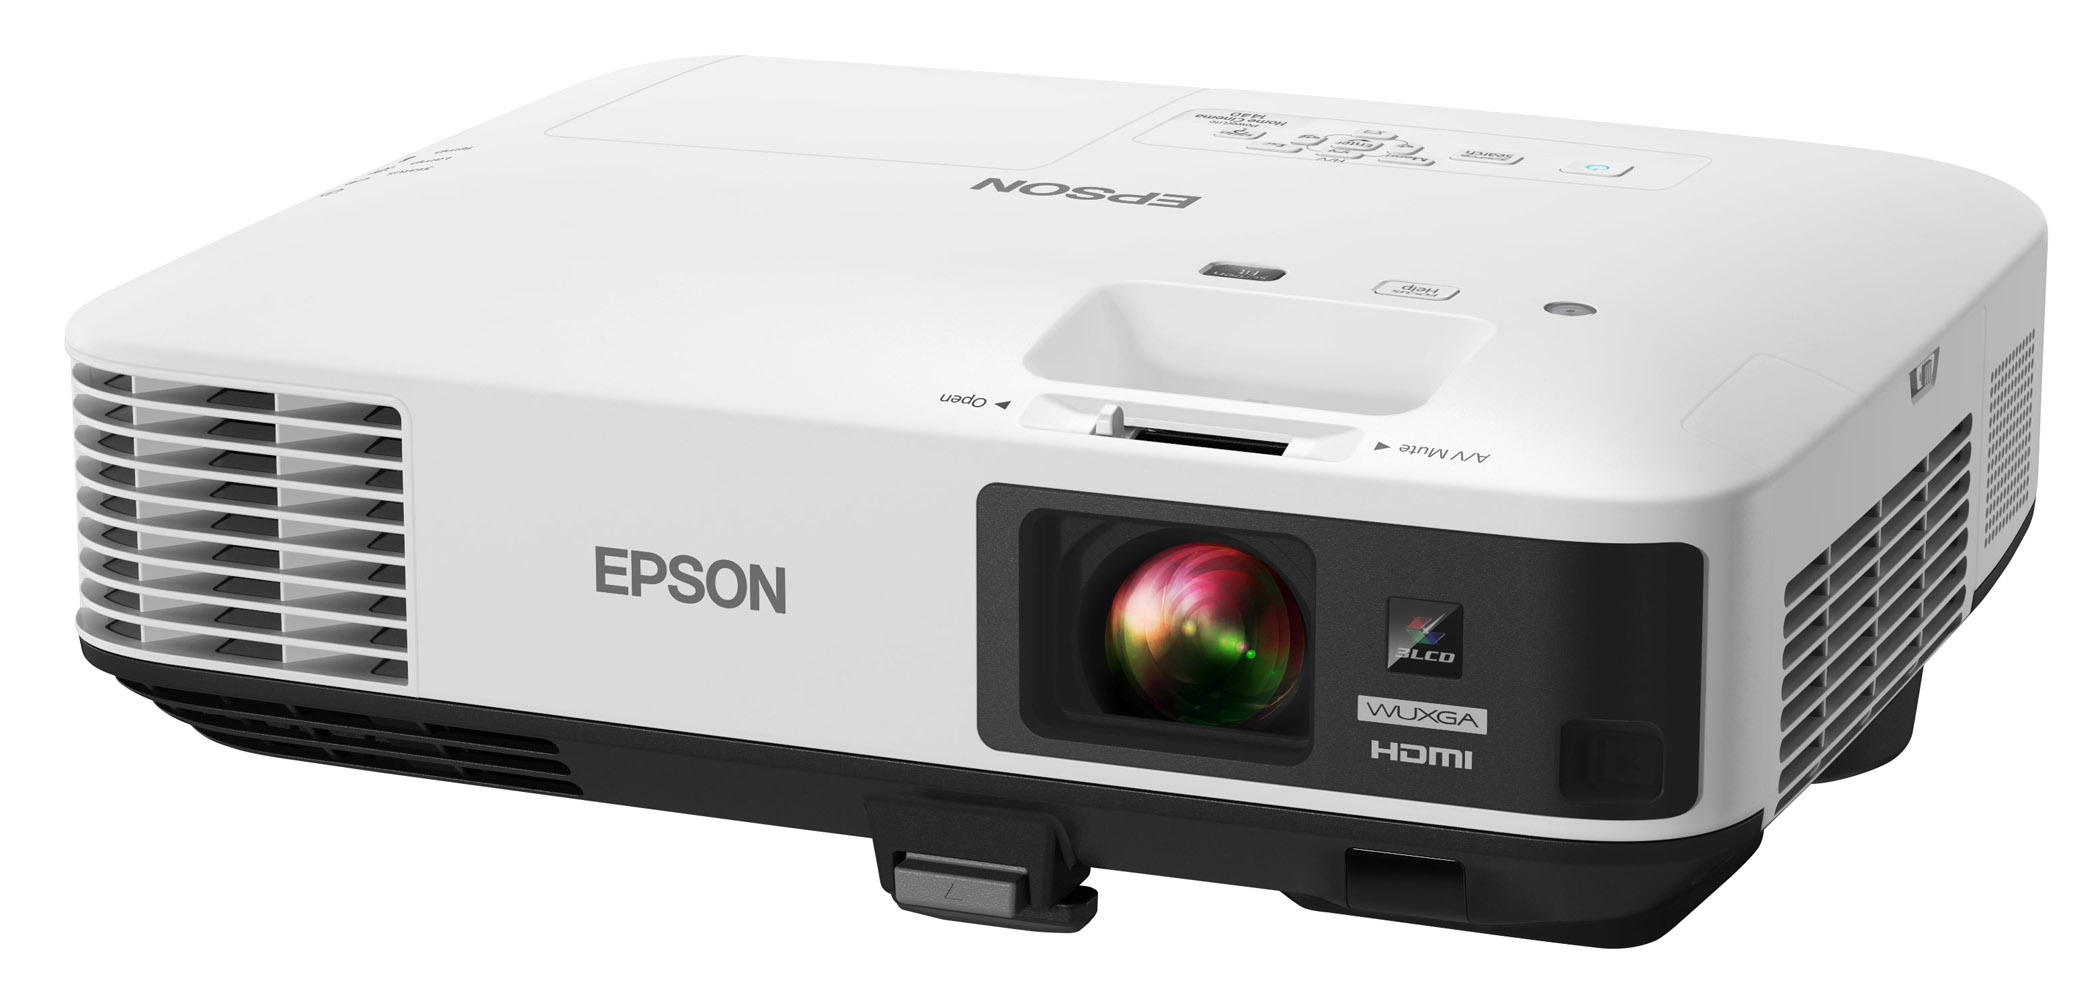 "Change The Way You ""TV"" with the Epson Ultra Bright Home Theater Projector from BestBuy"